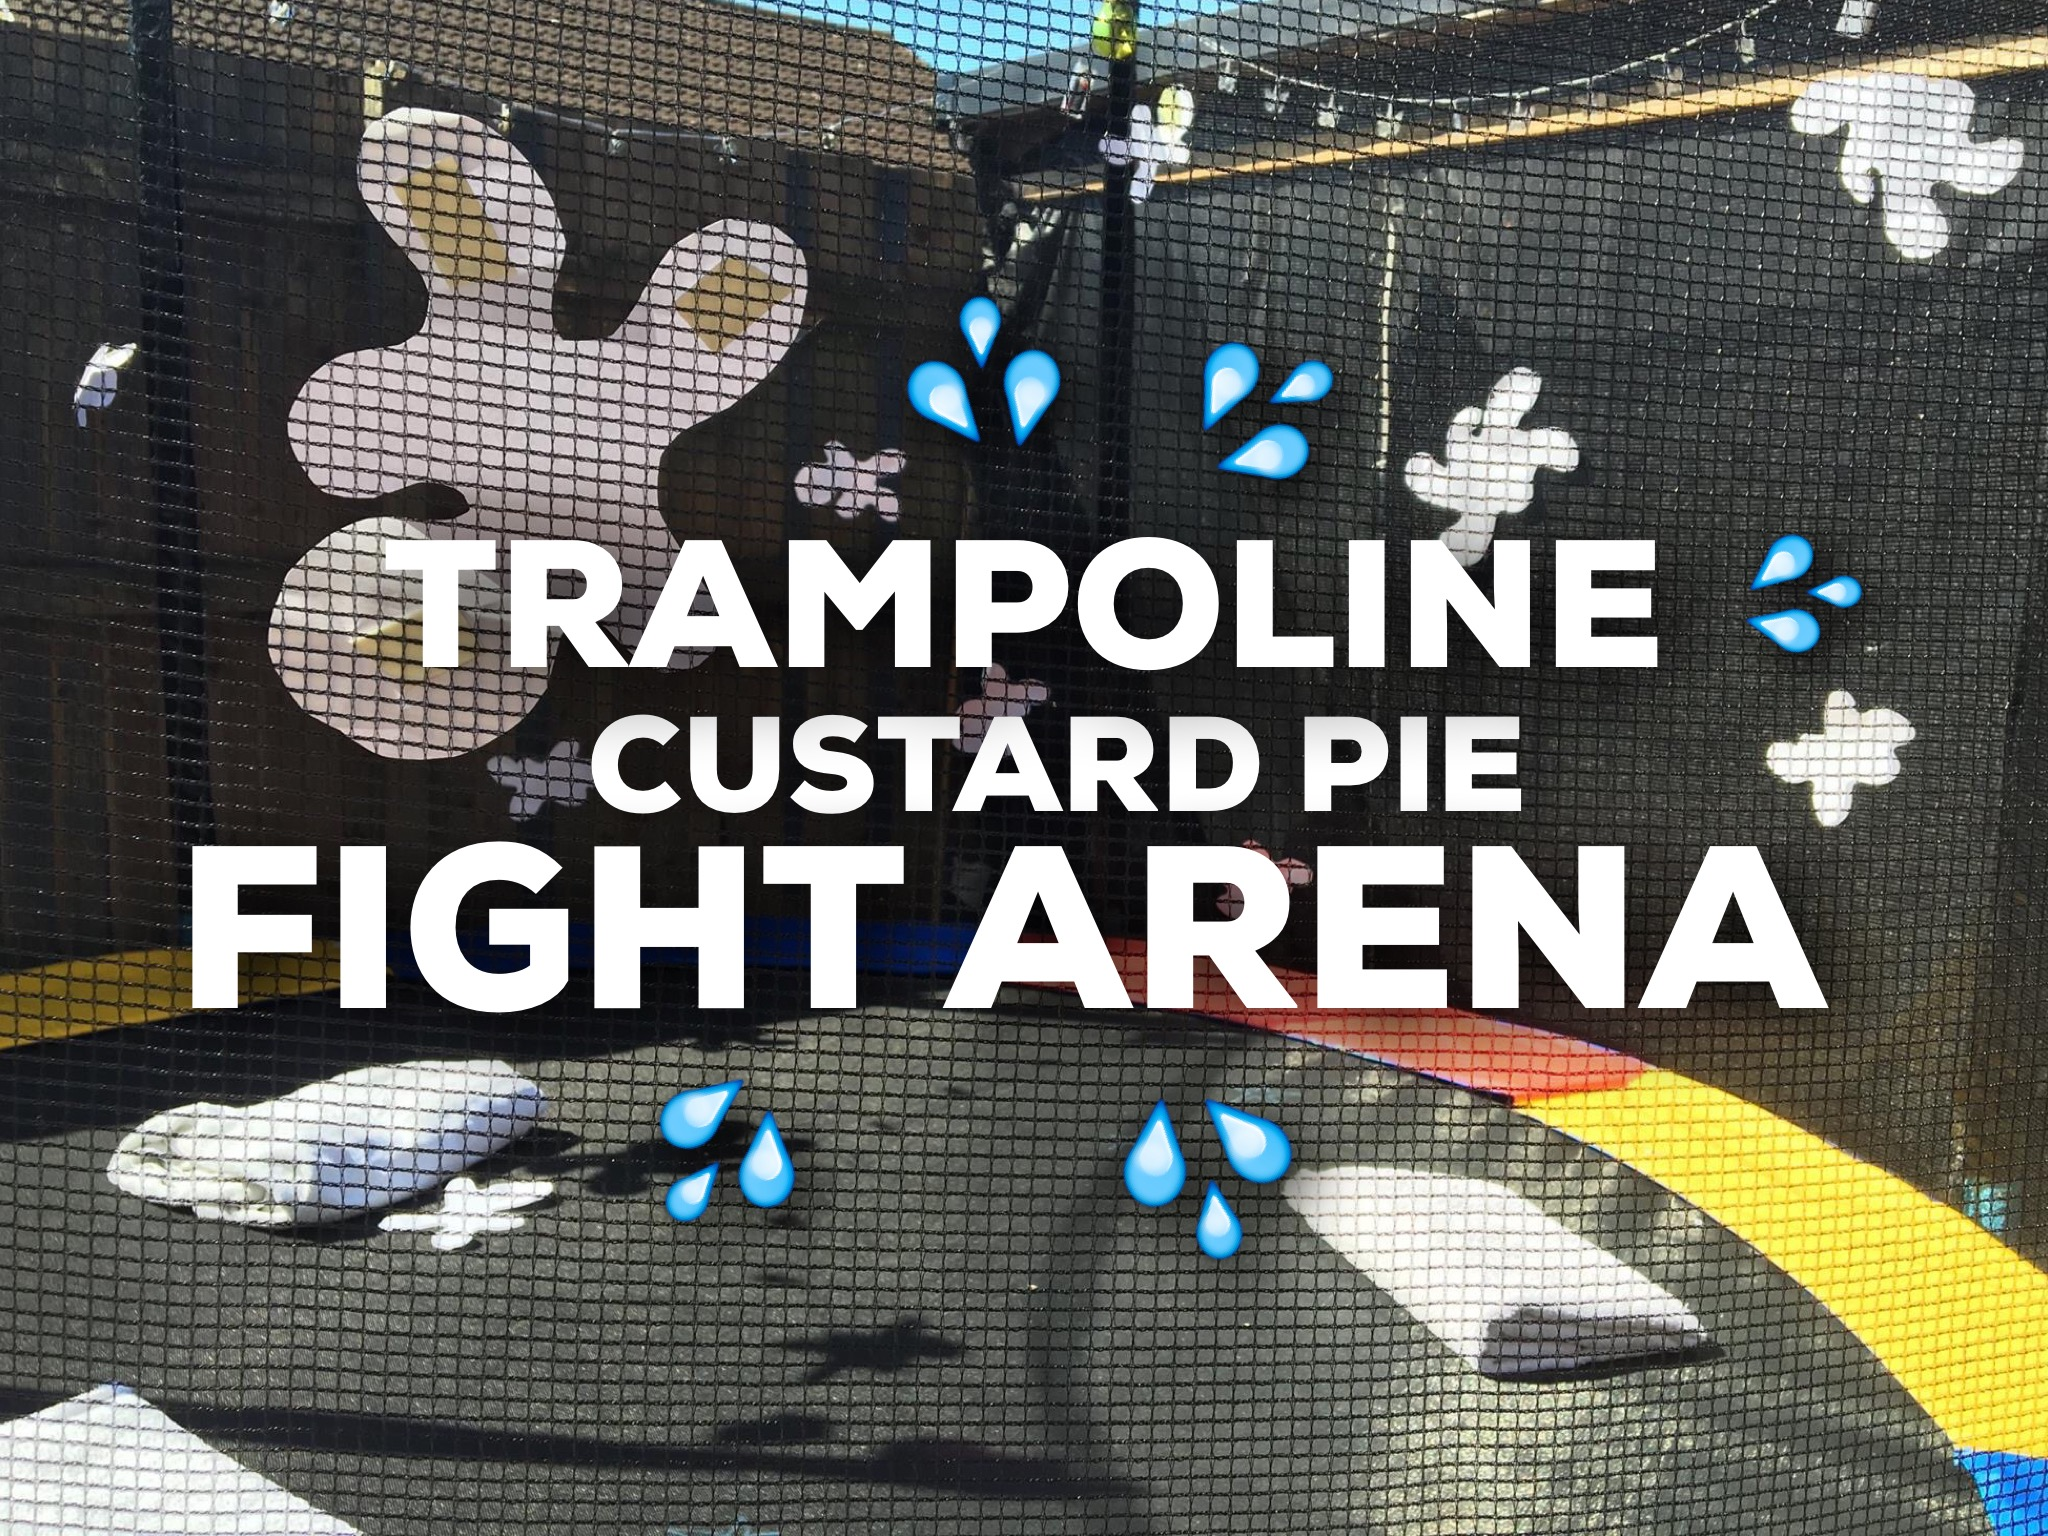 Trampoline Custard Pie Fight Arena